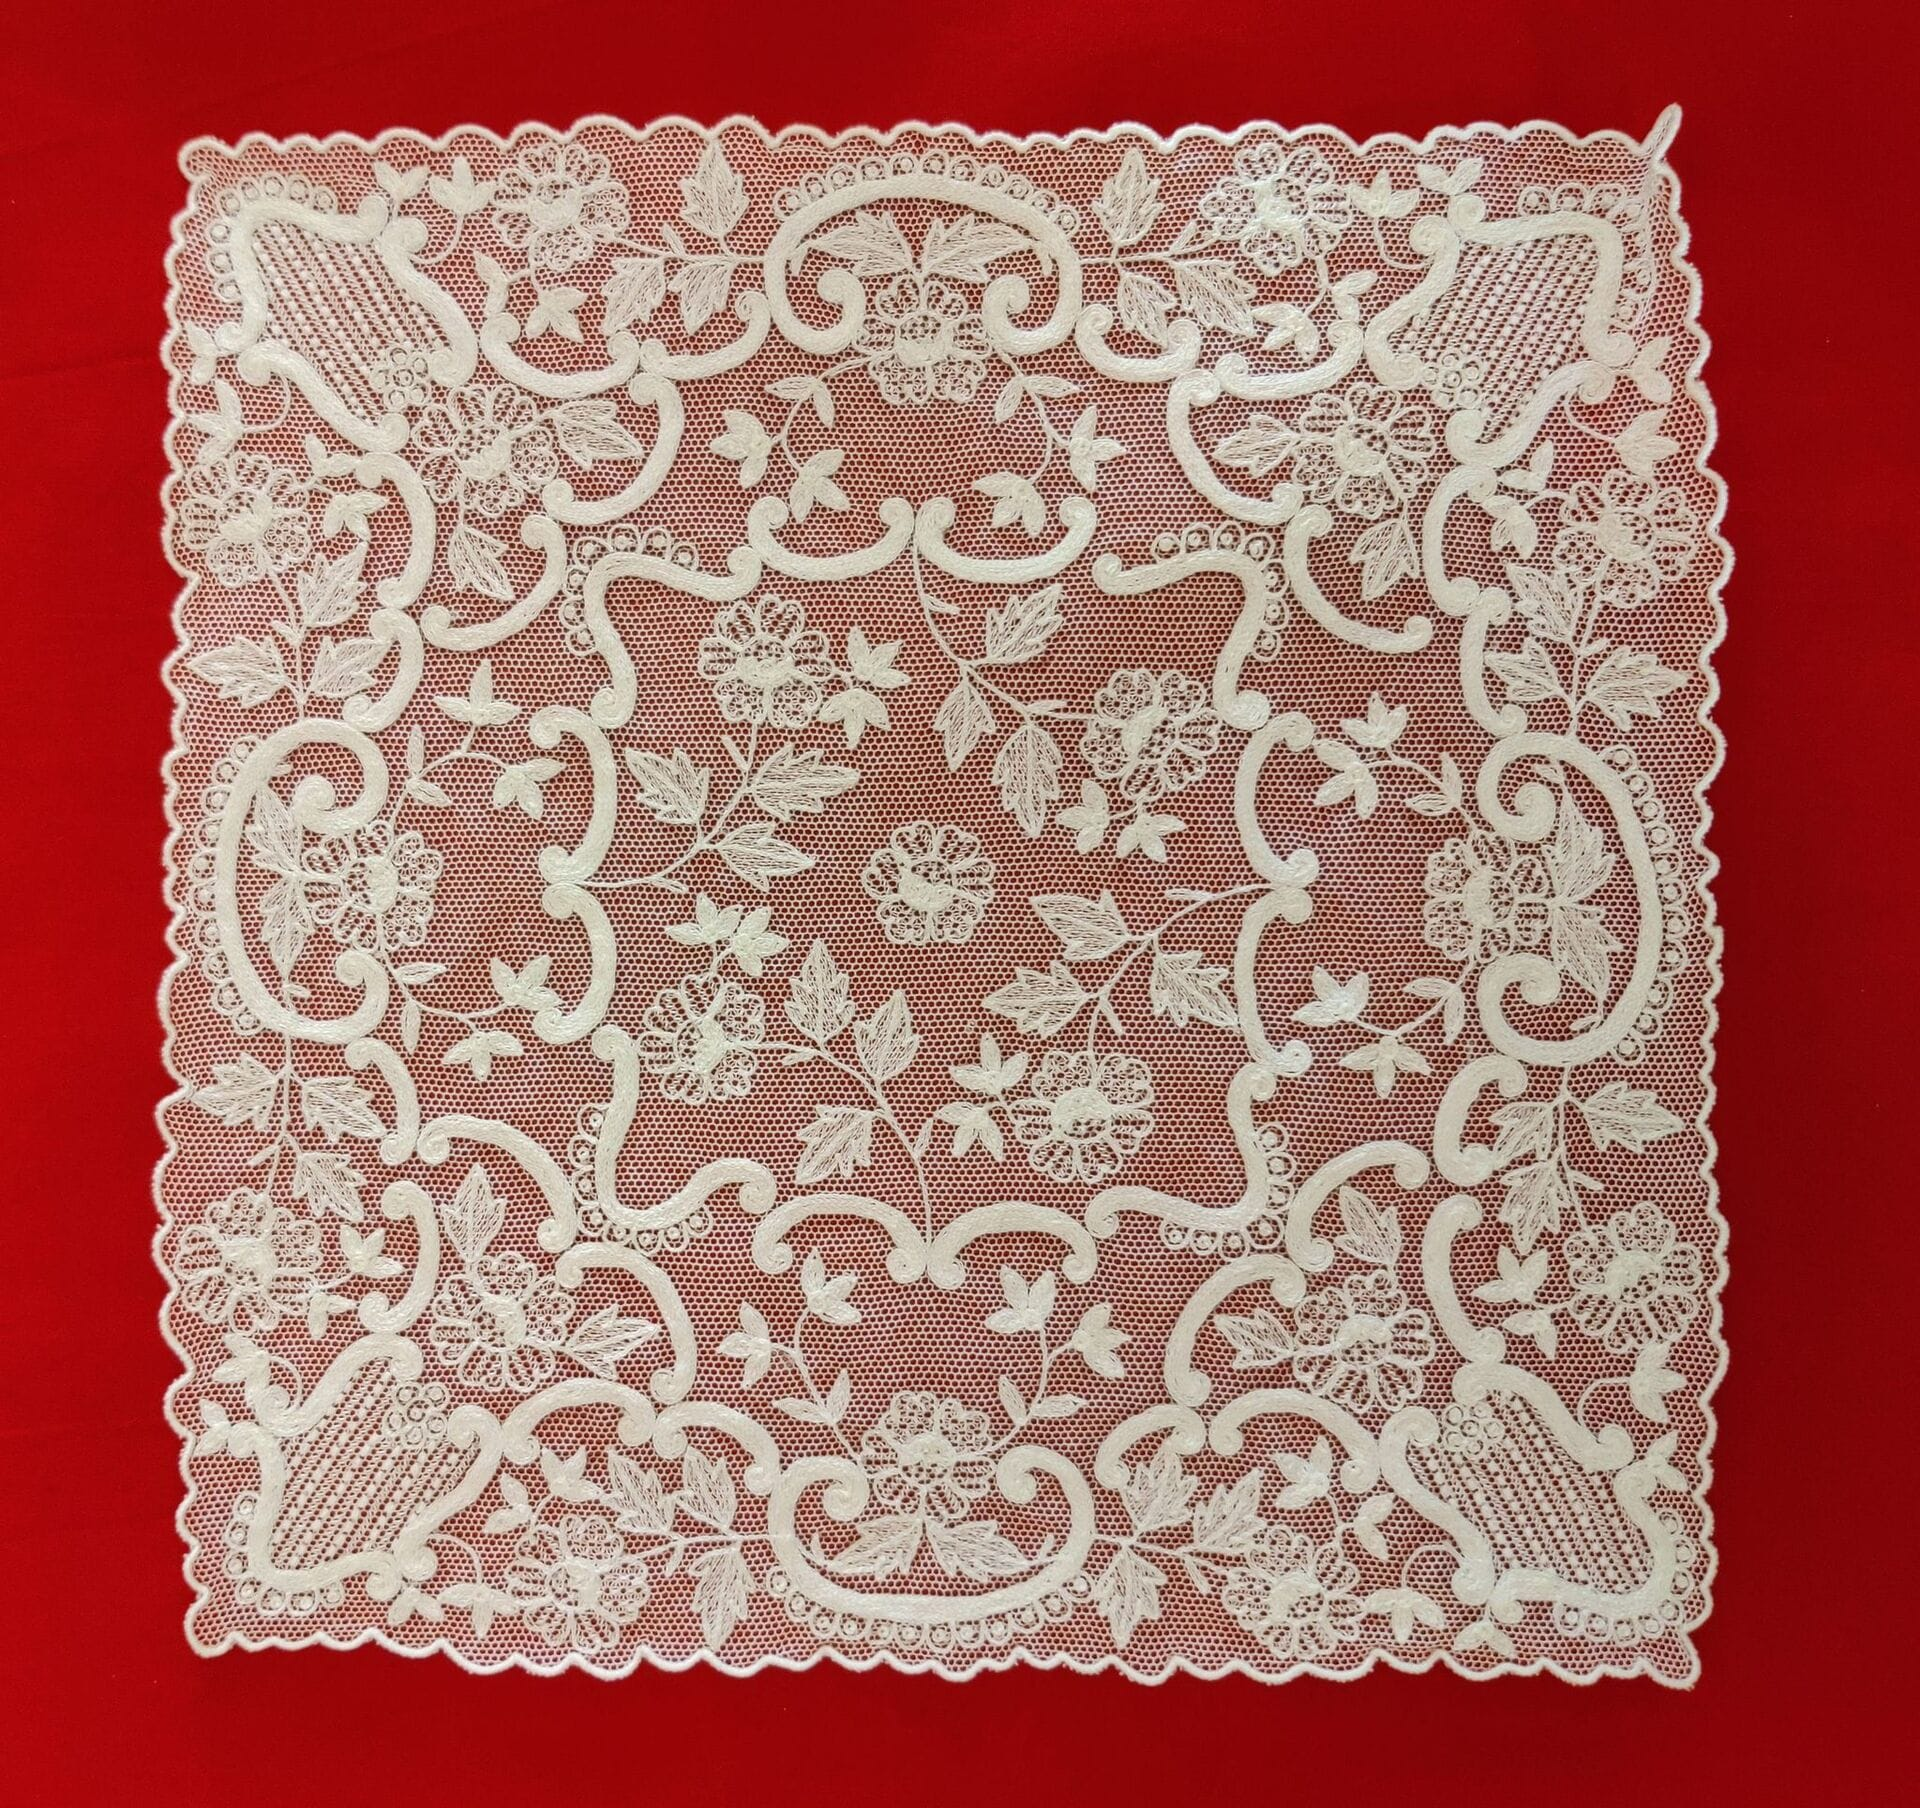 Lace Making- A Cultural Craft of Europe